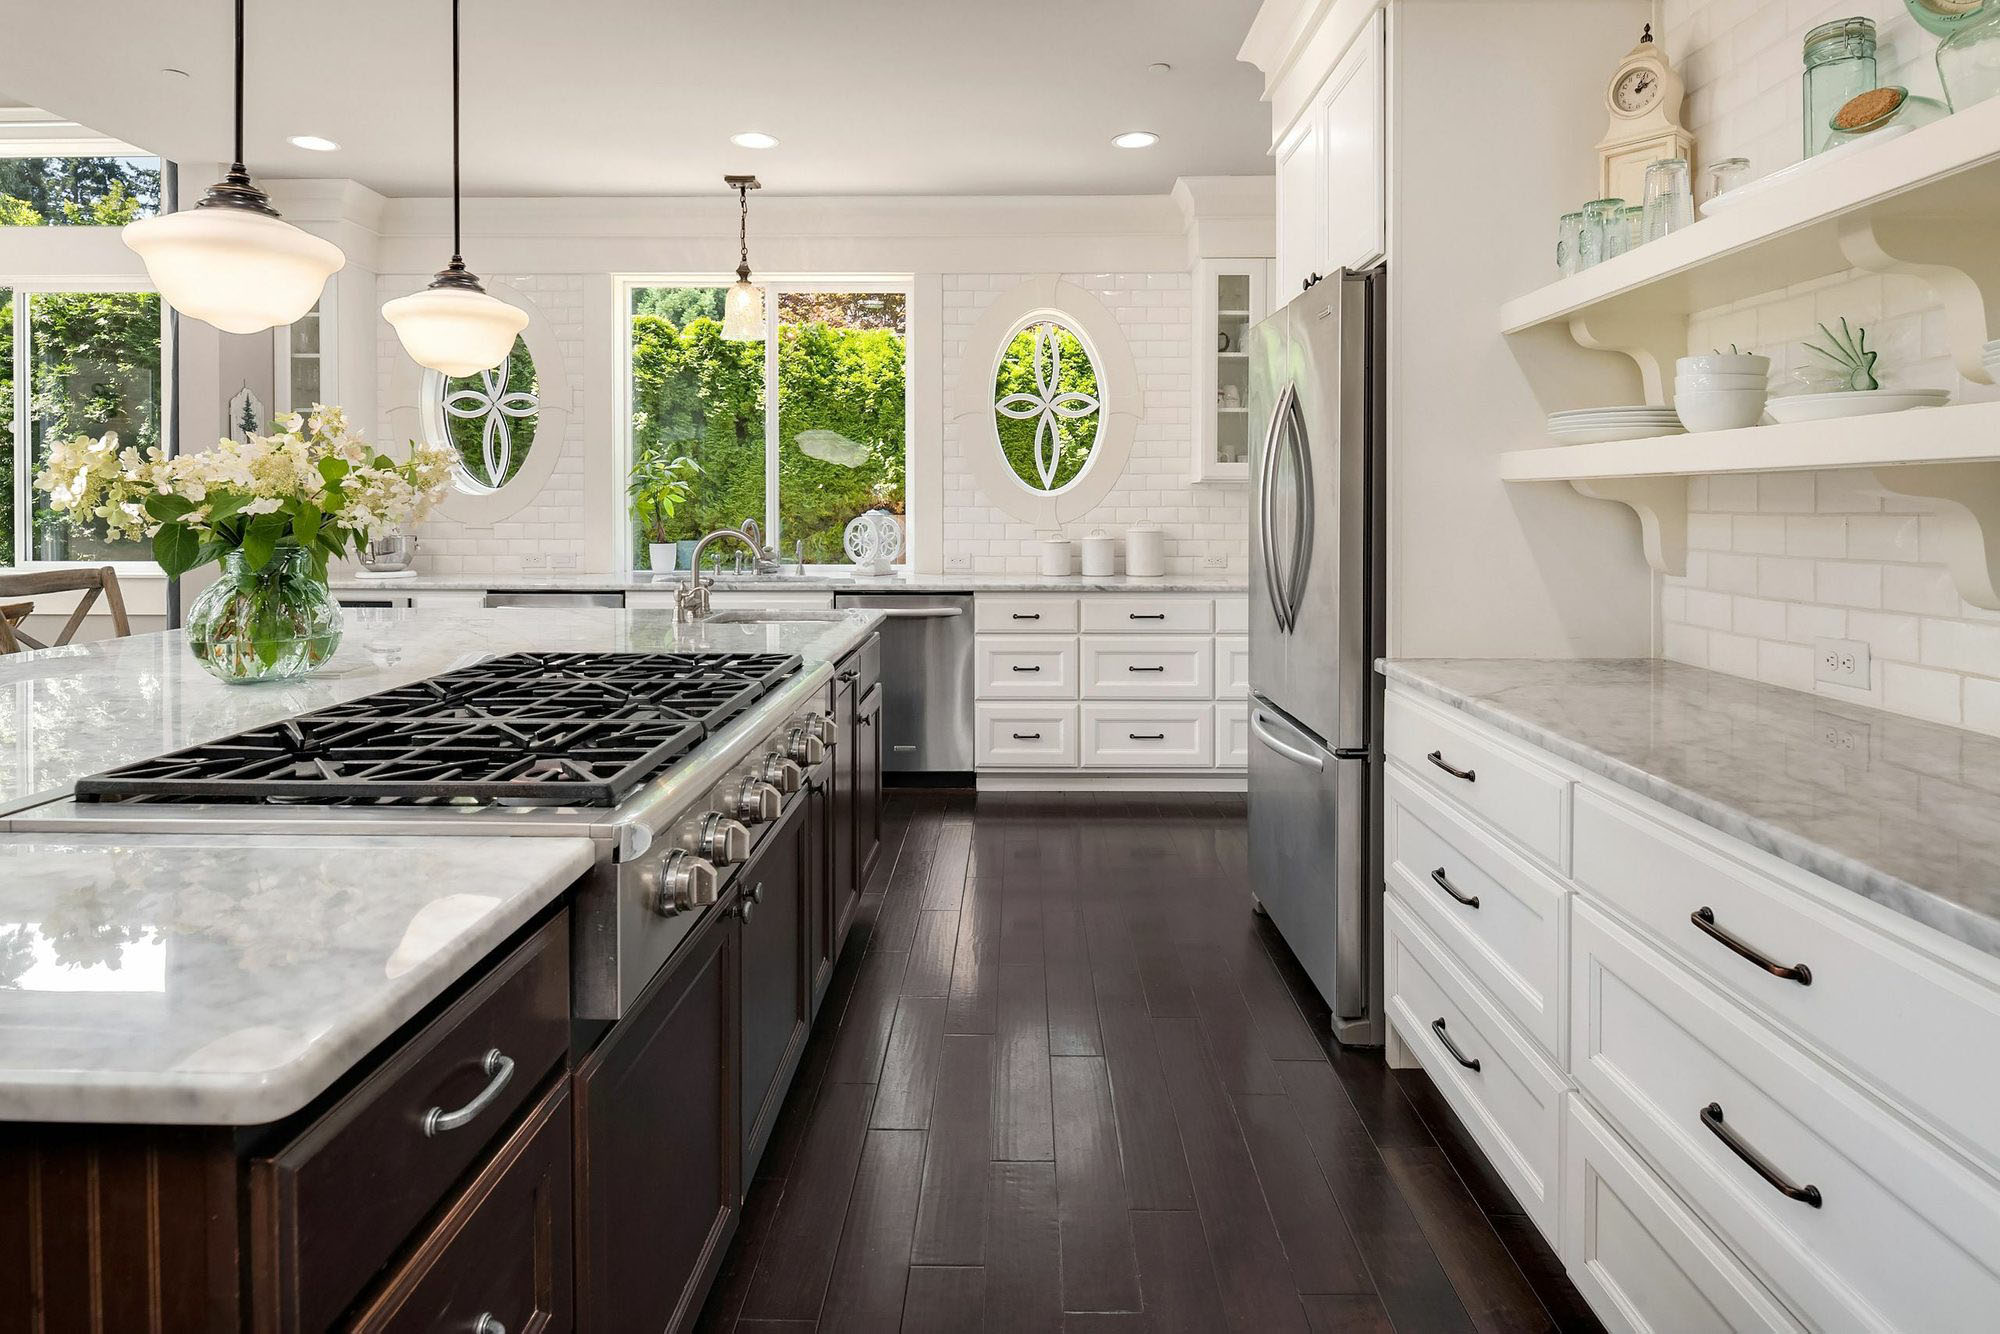 Beautiful luxury kitchen design with white cabinetry, darkly stained island, stainless appliances and marble.